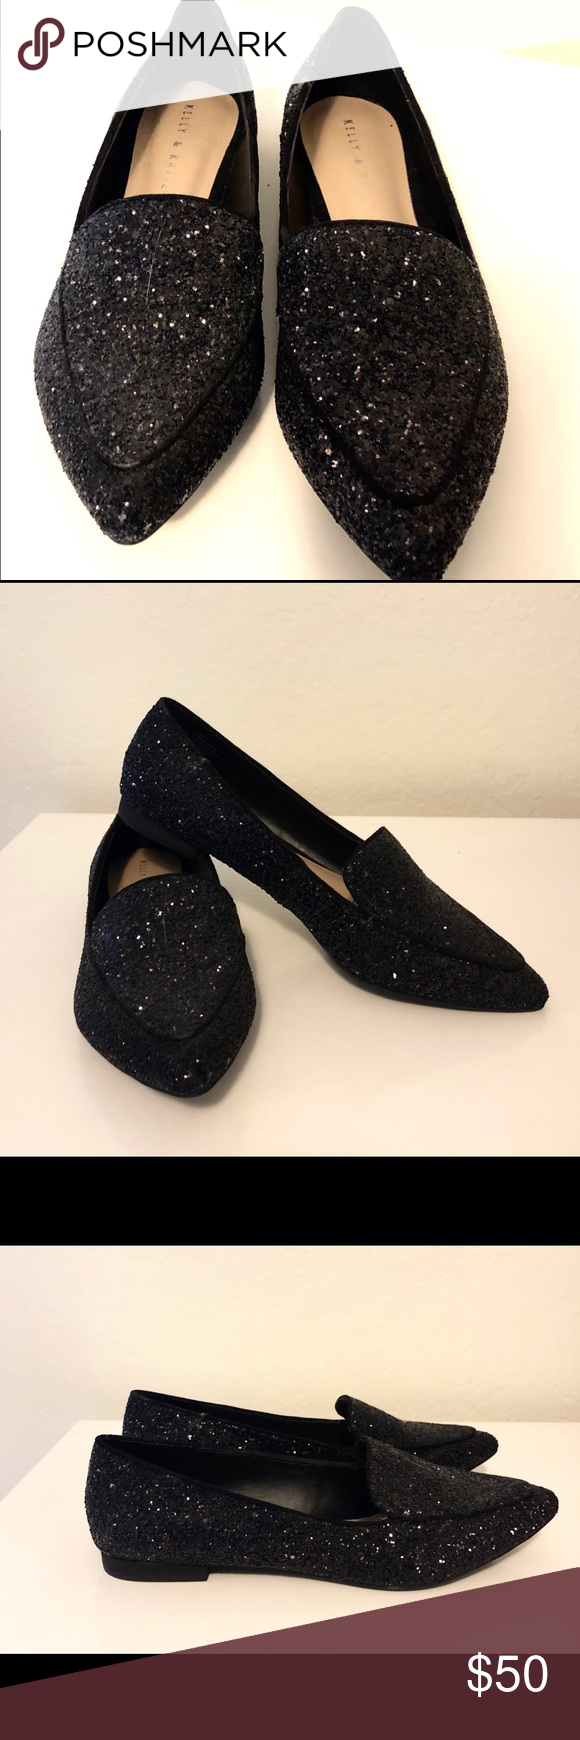 5bd7e838f5d Kelly & Katie Flats Black sparkly pointed-toe flats (never been worn ...